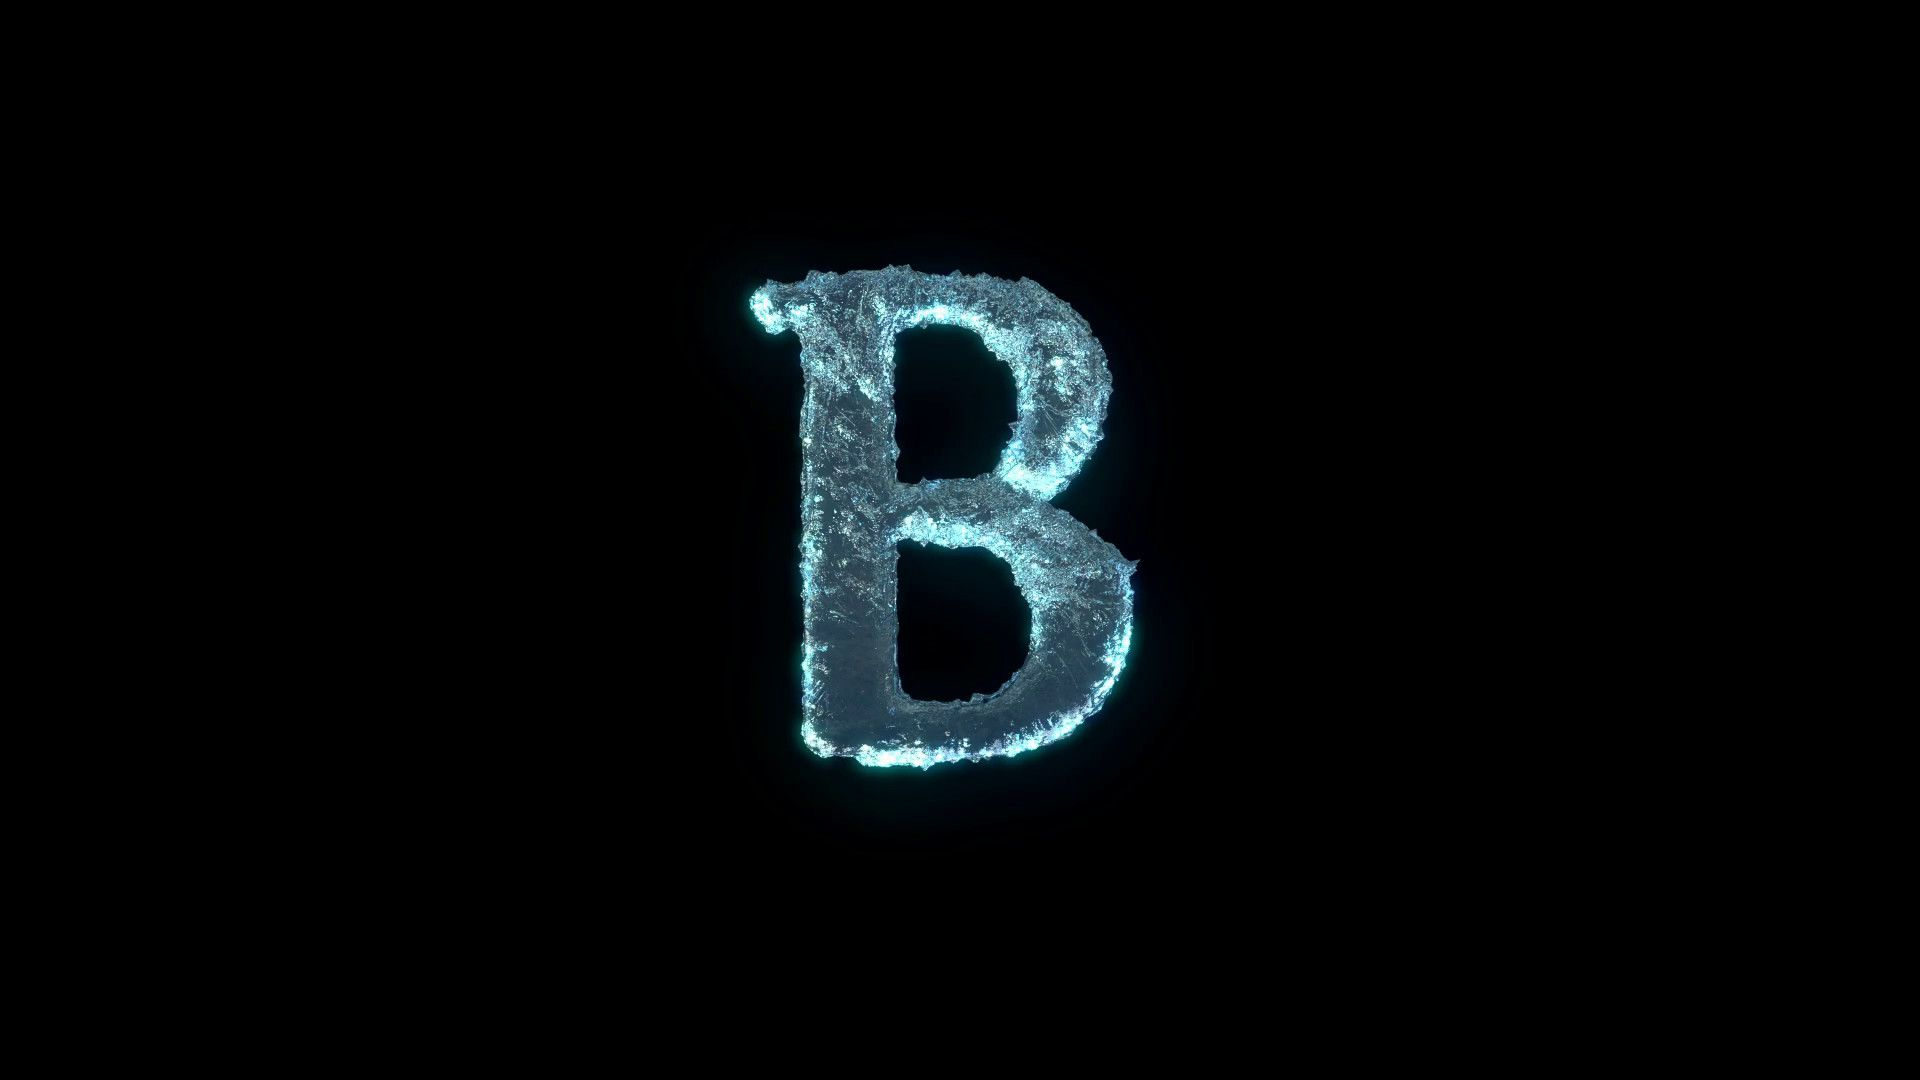 1920x1080 47+ Letter B Wallpapers on WallpaperPlay